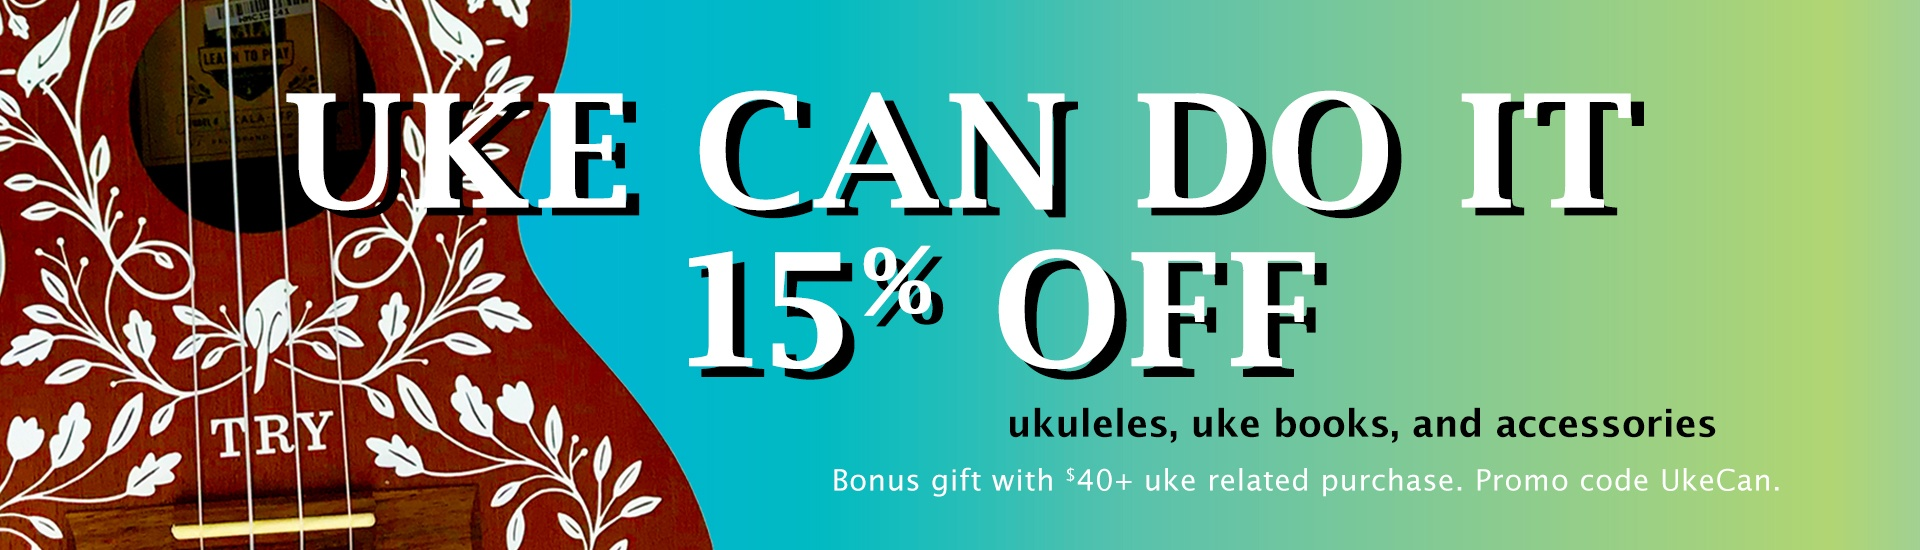 ukulele and accessory sale